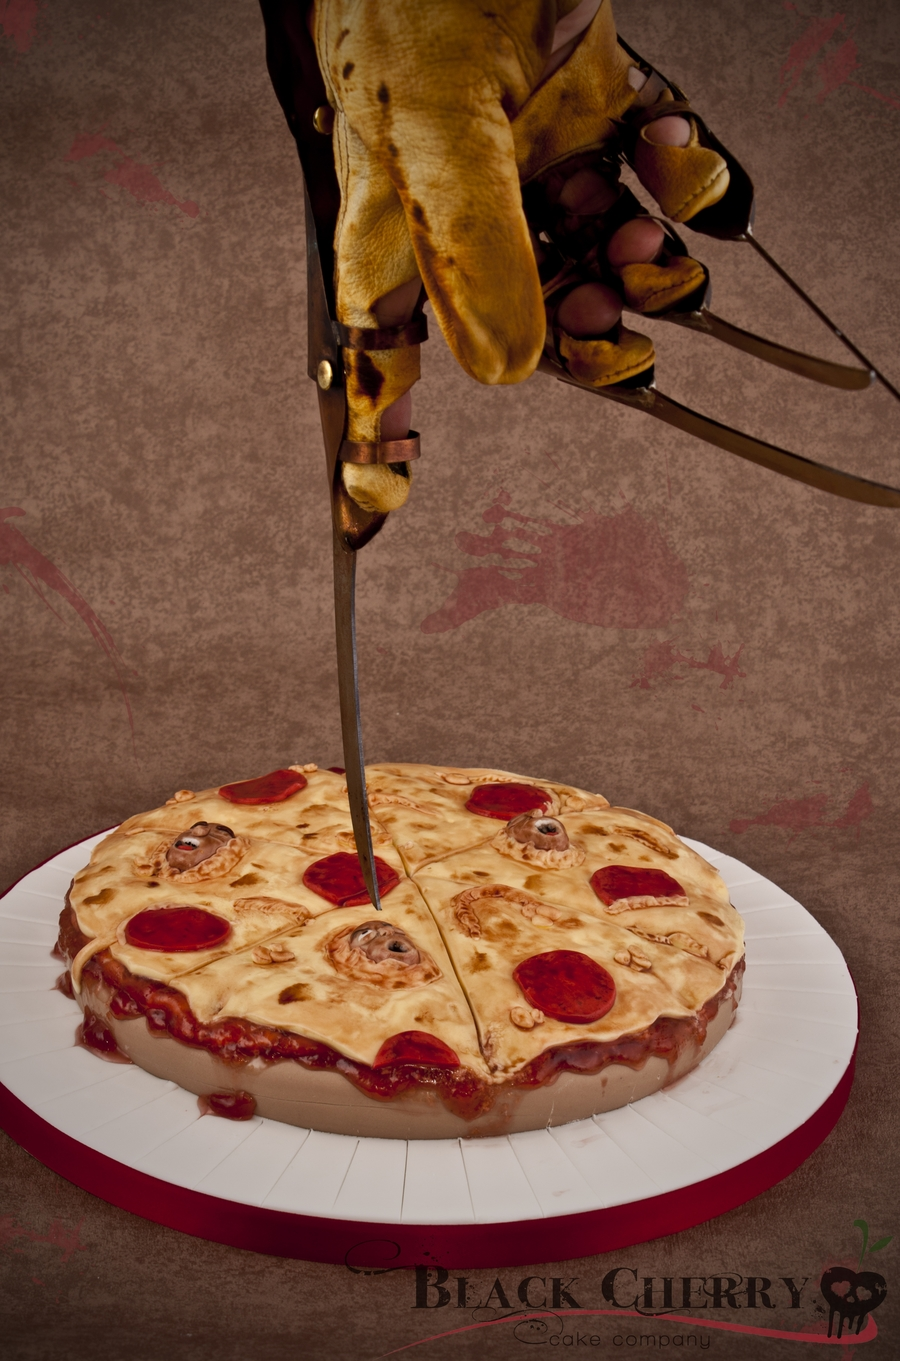 Soul Pizza Nightmare On Elm Street 4 Cake  on Cake Central